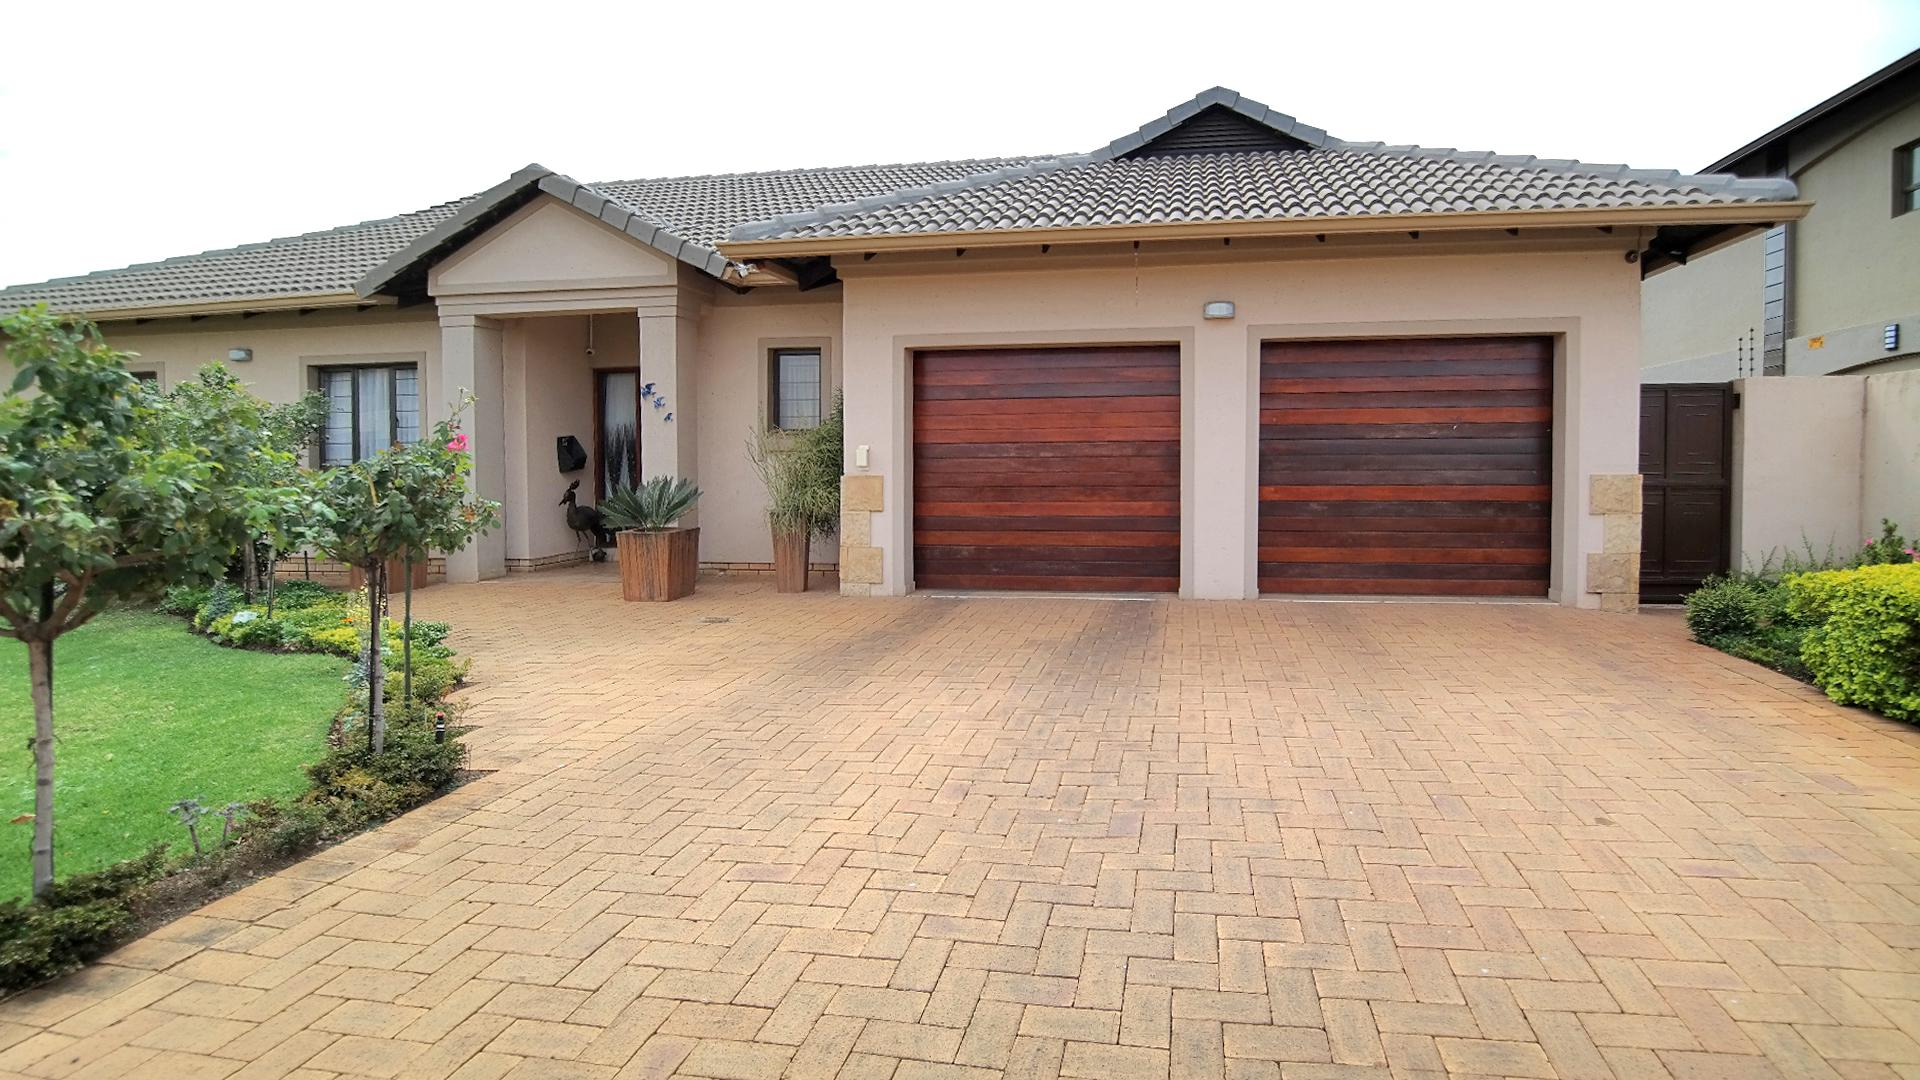 3 Bedroom House for sale in Montana ENT0066308 : photo#2